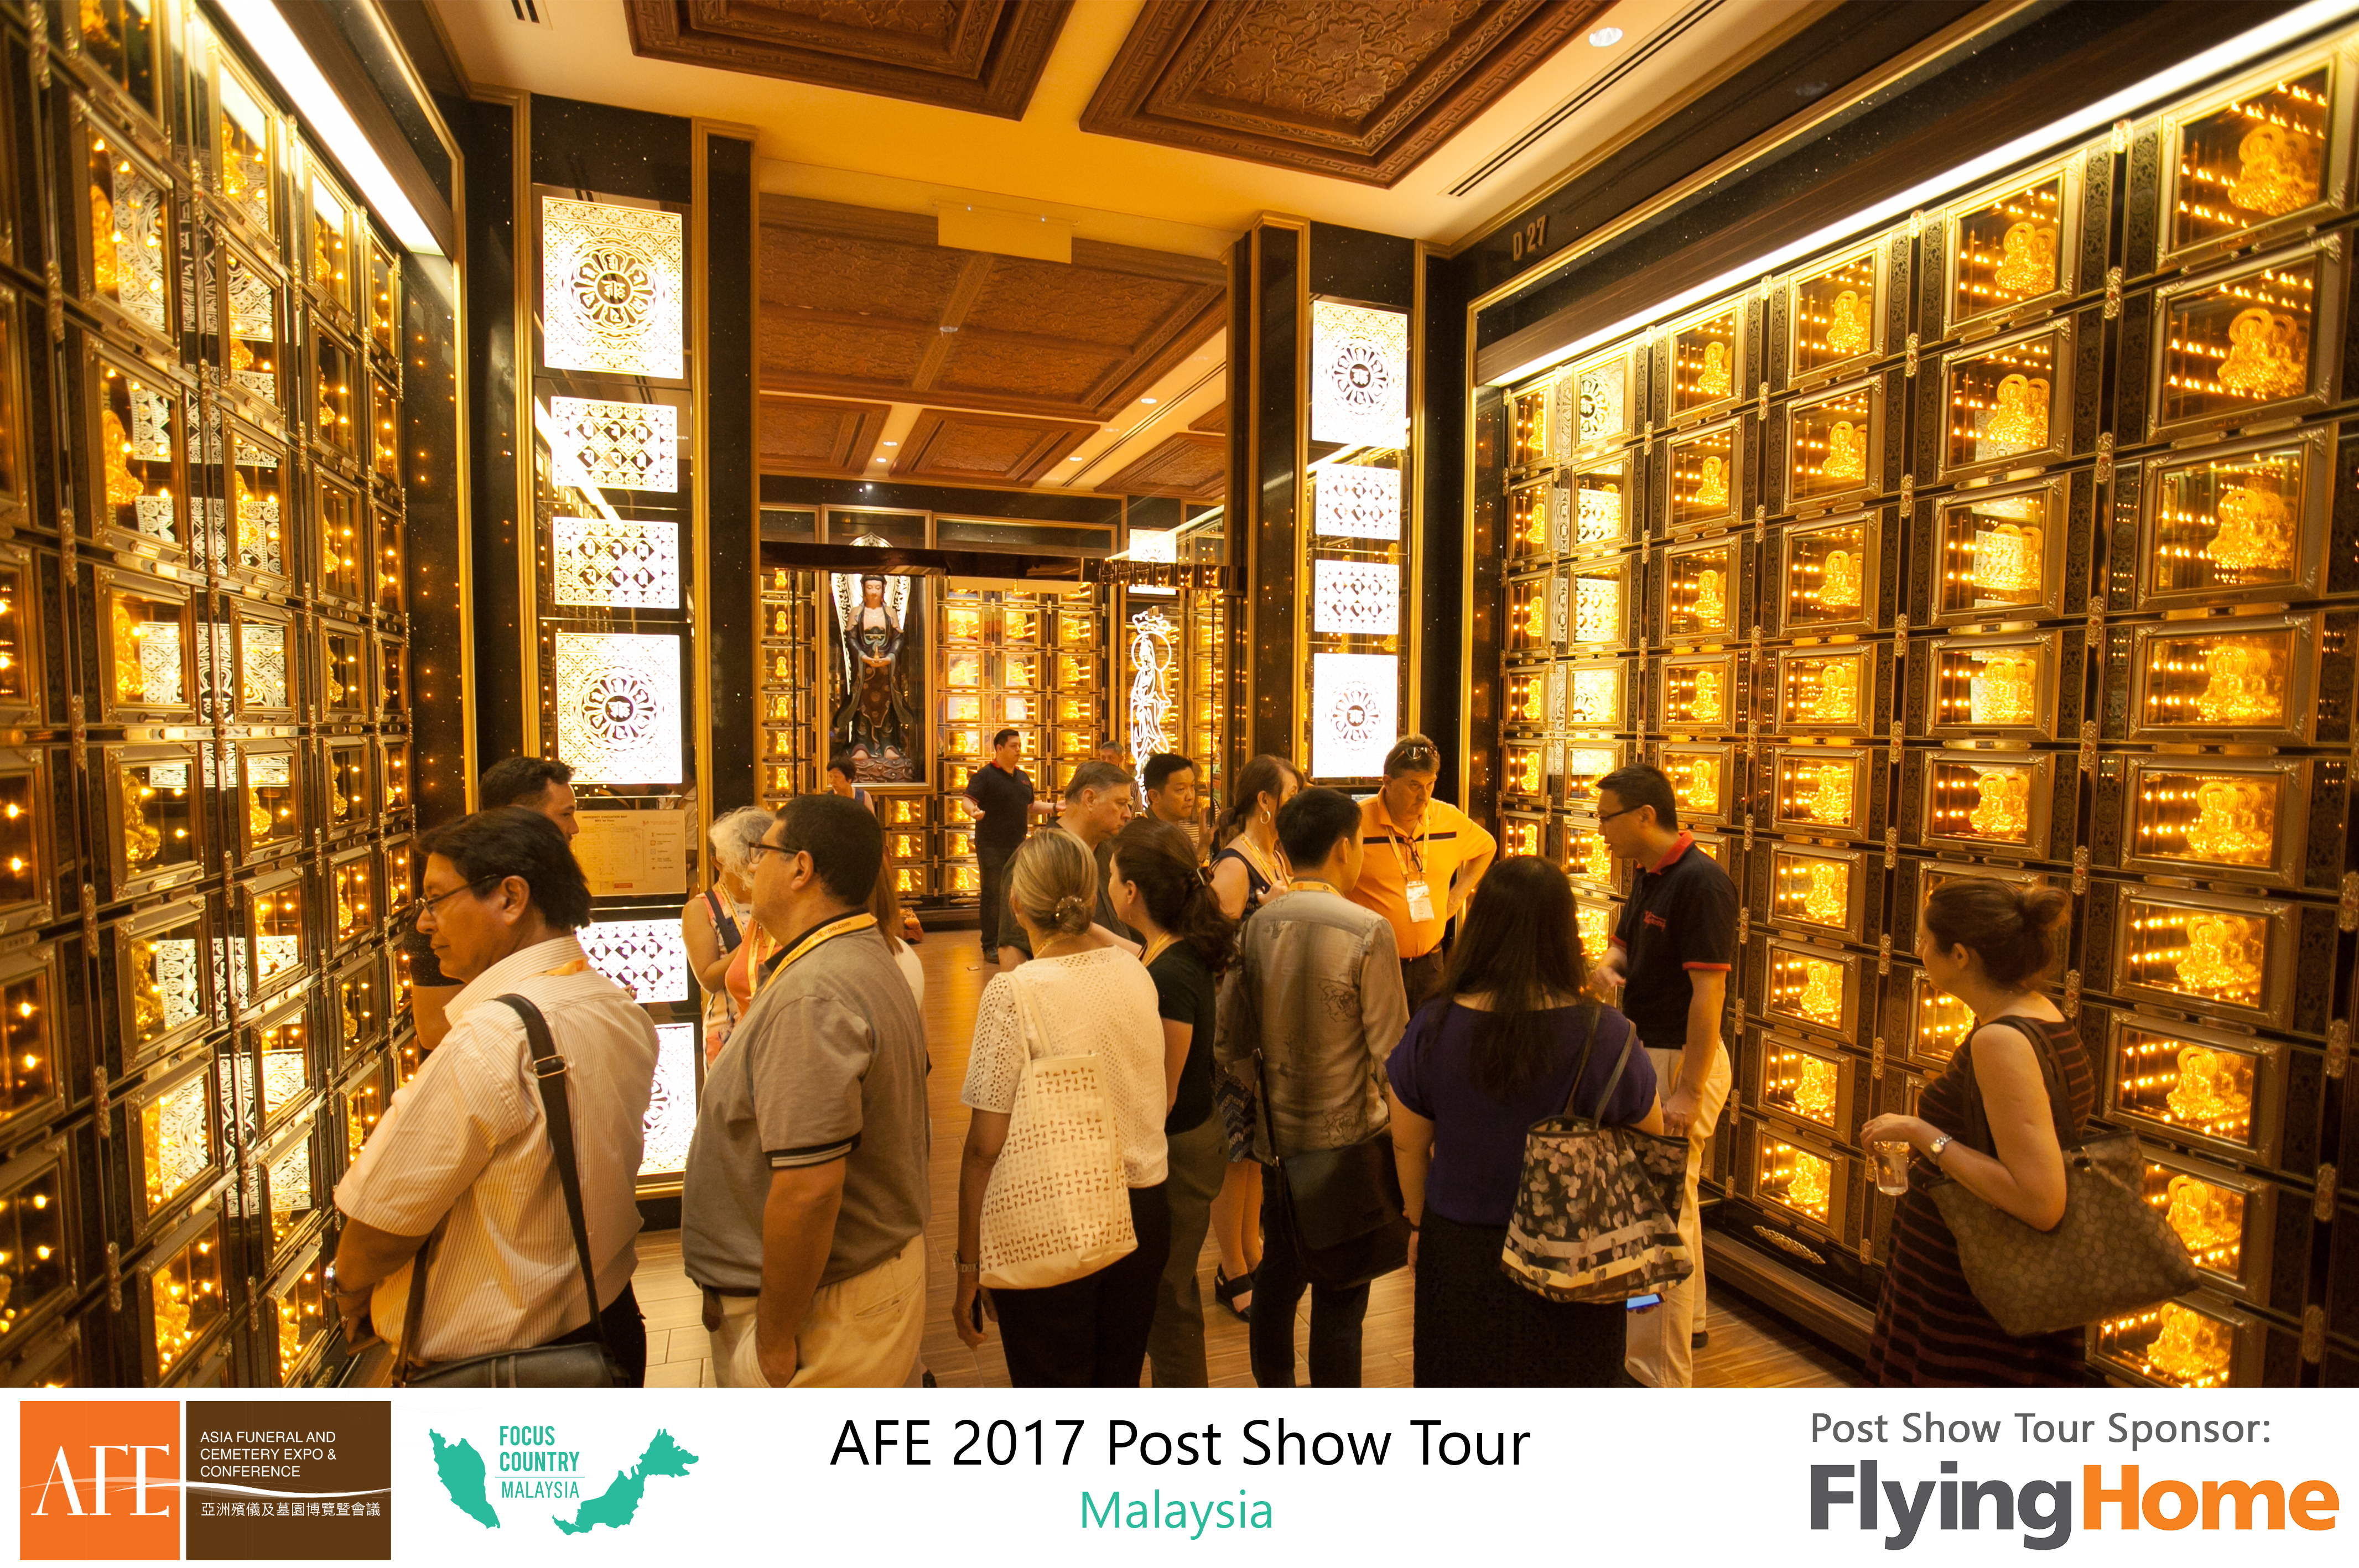 AFE Post Show Tour 2017 Day 2 - 20